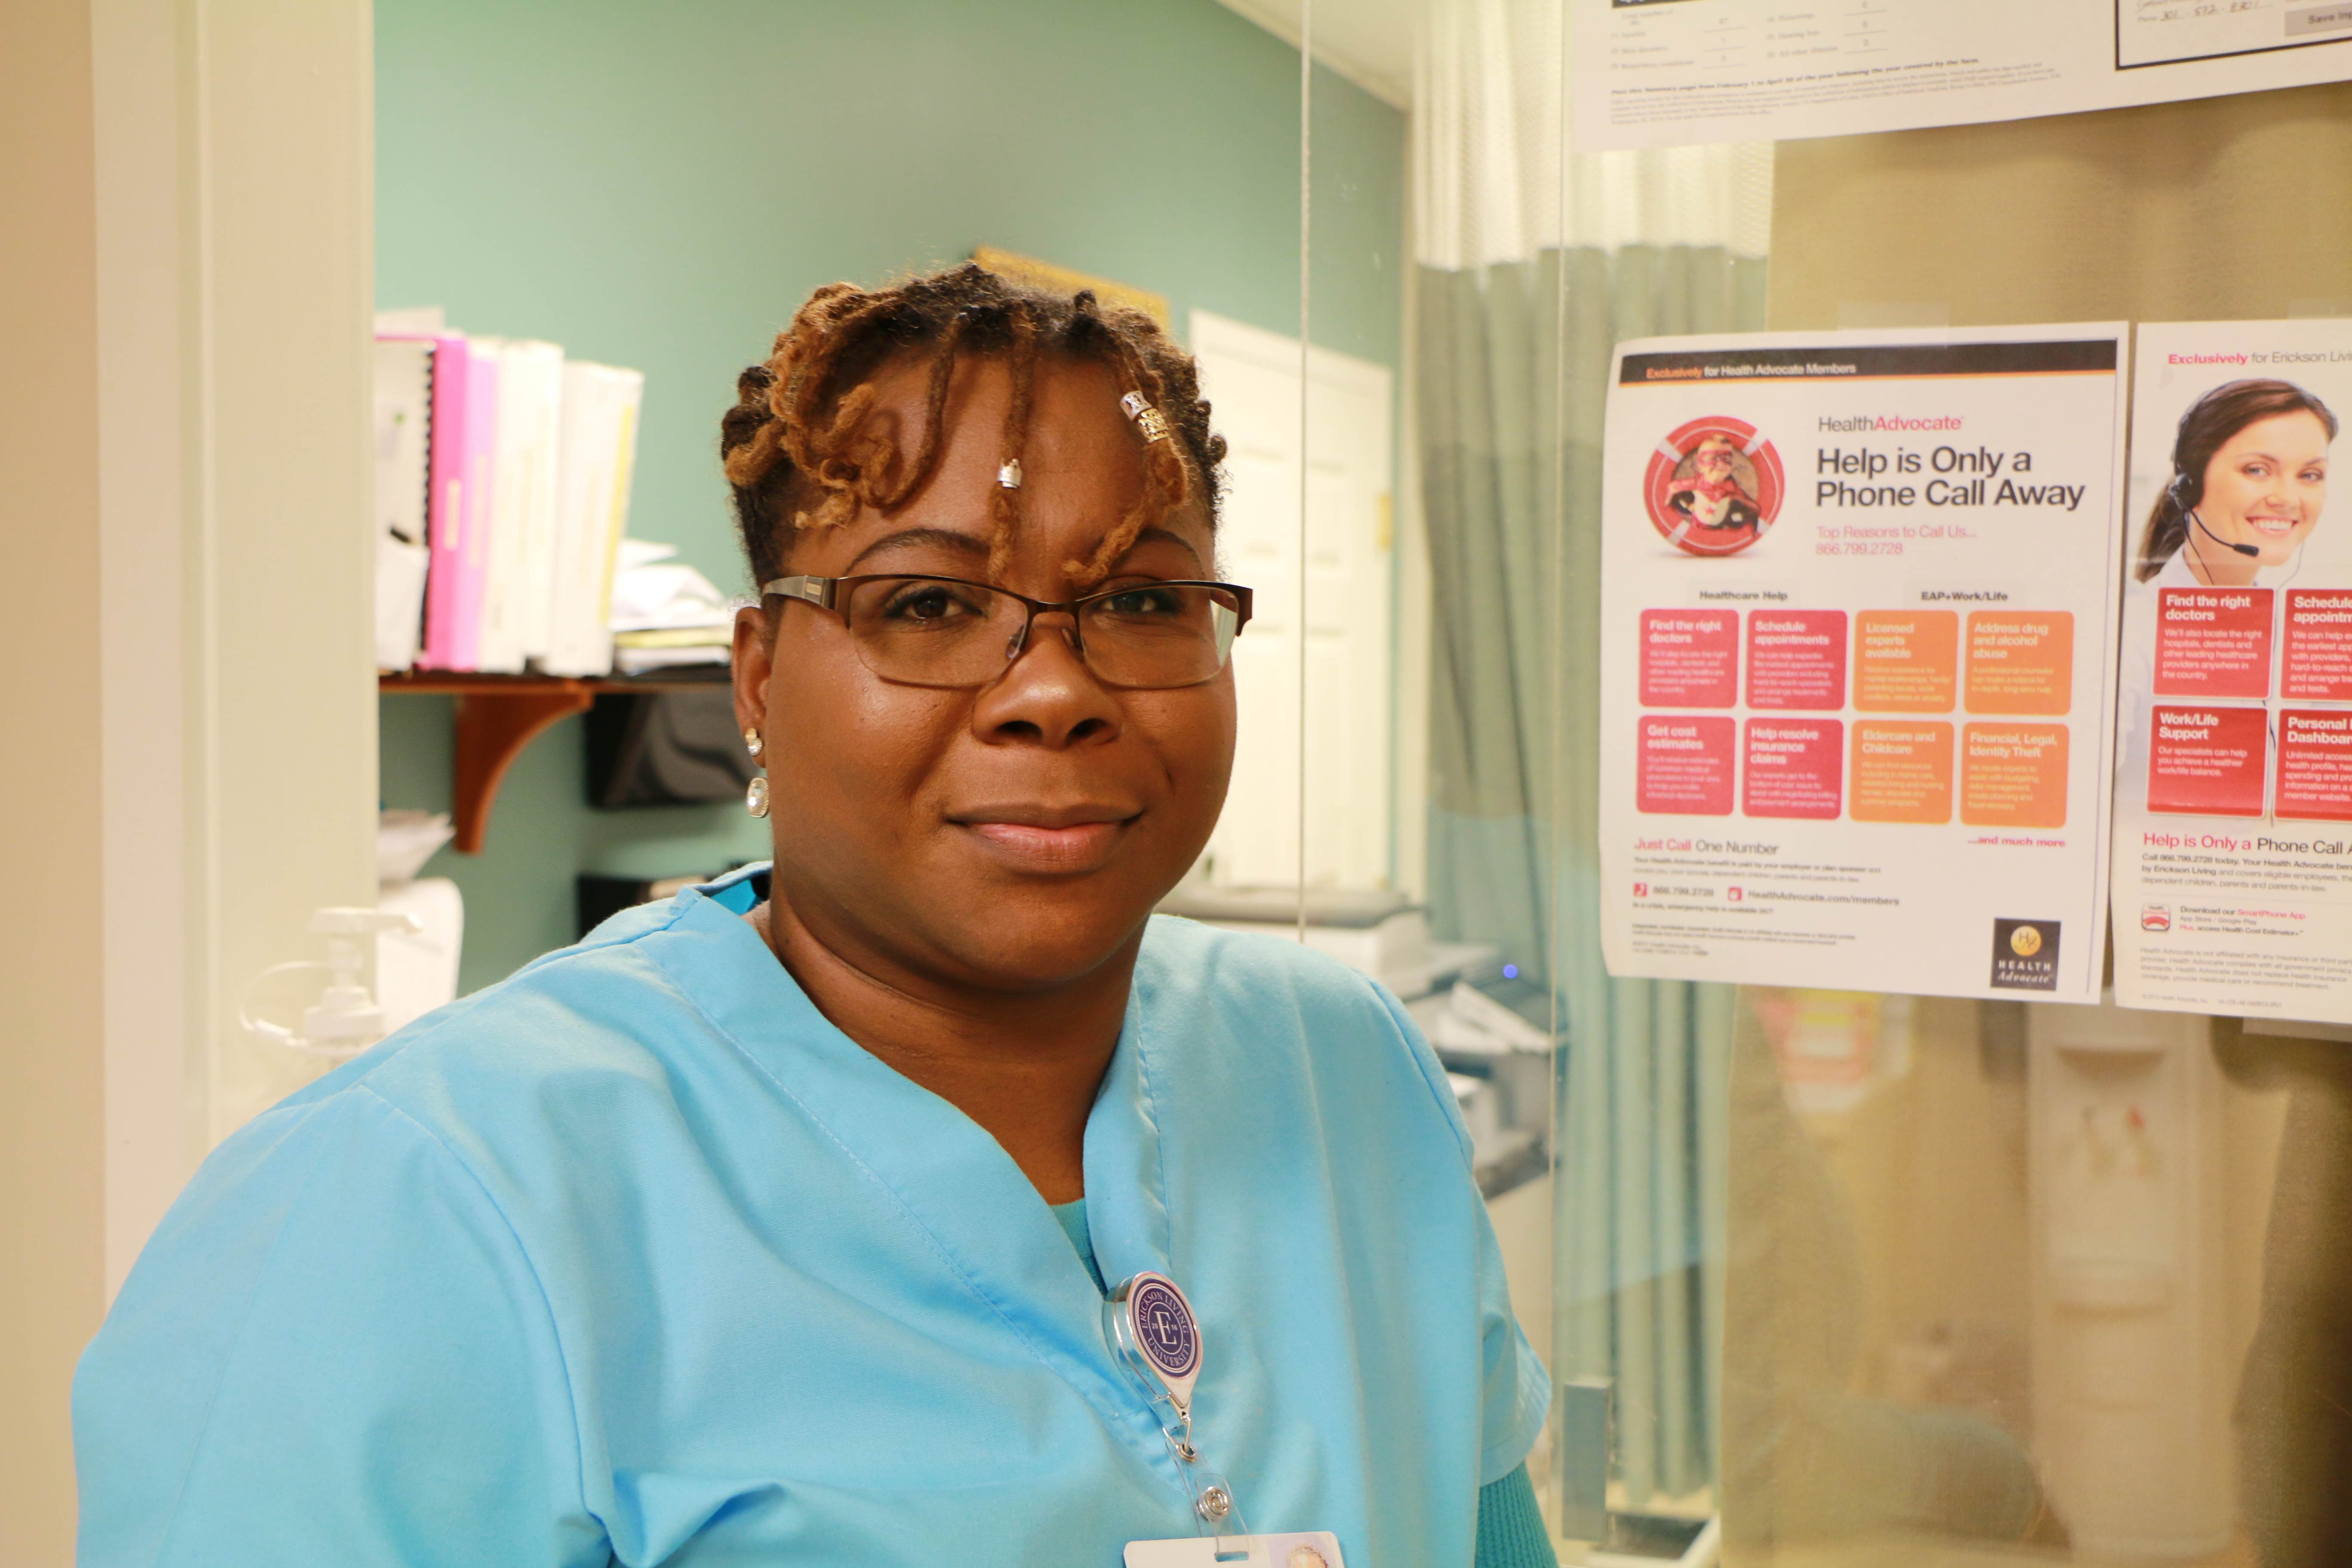 Riderwood Employee Health and Wellness Center Medical Assistant Meggan Madden. Photo by Julia Collins